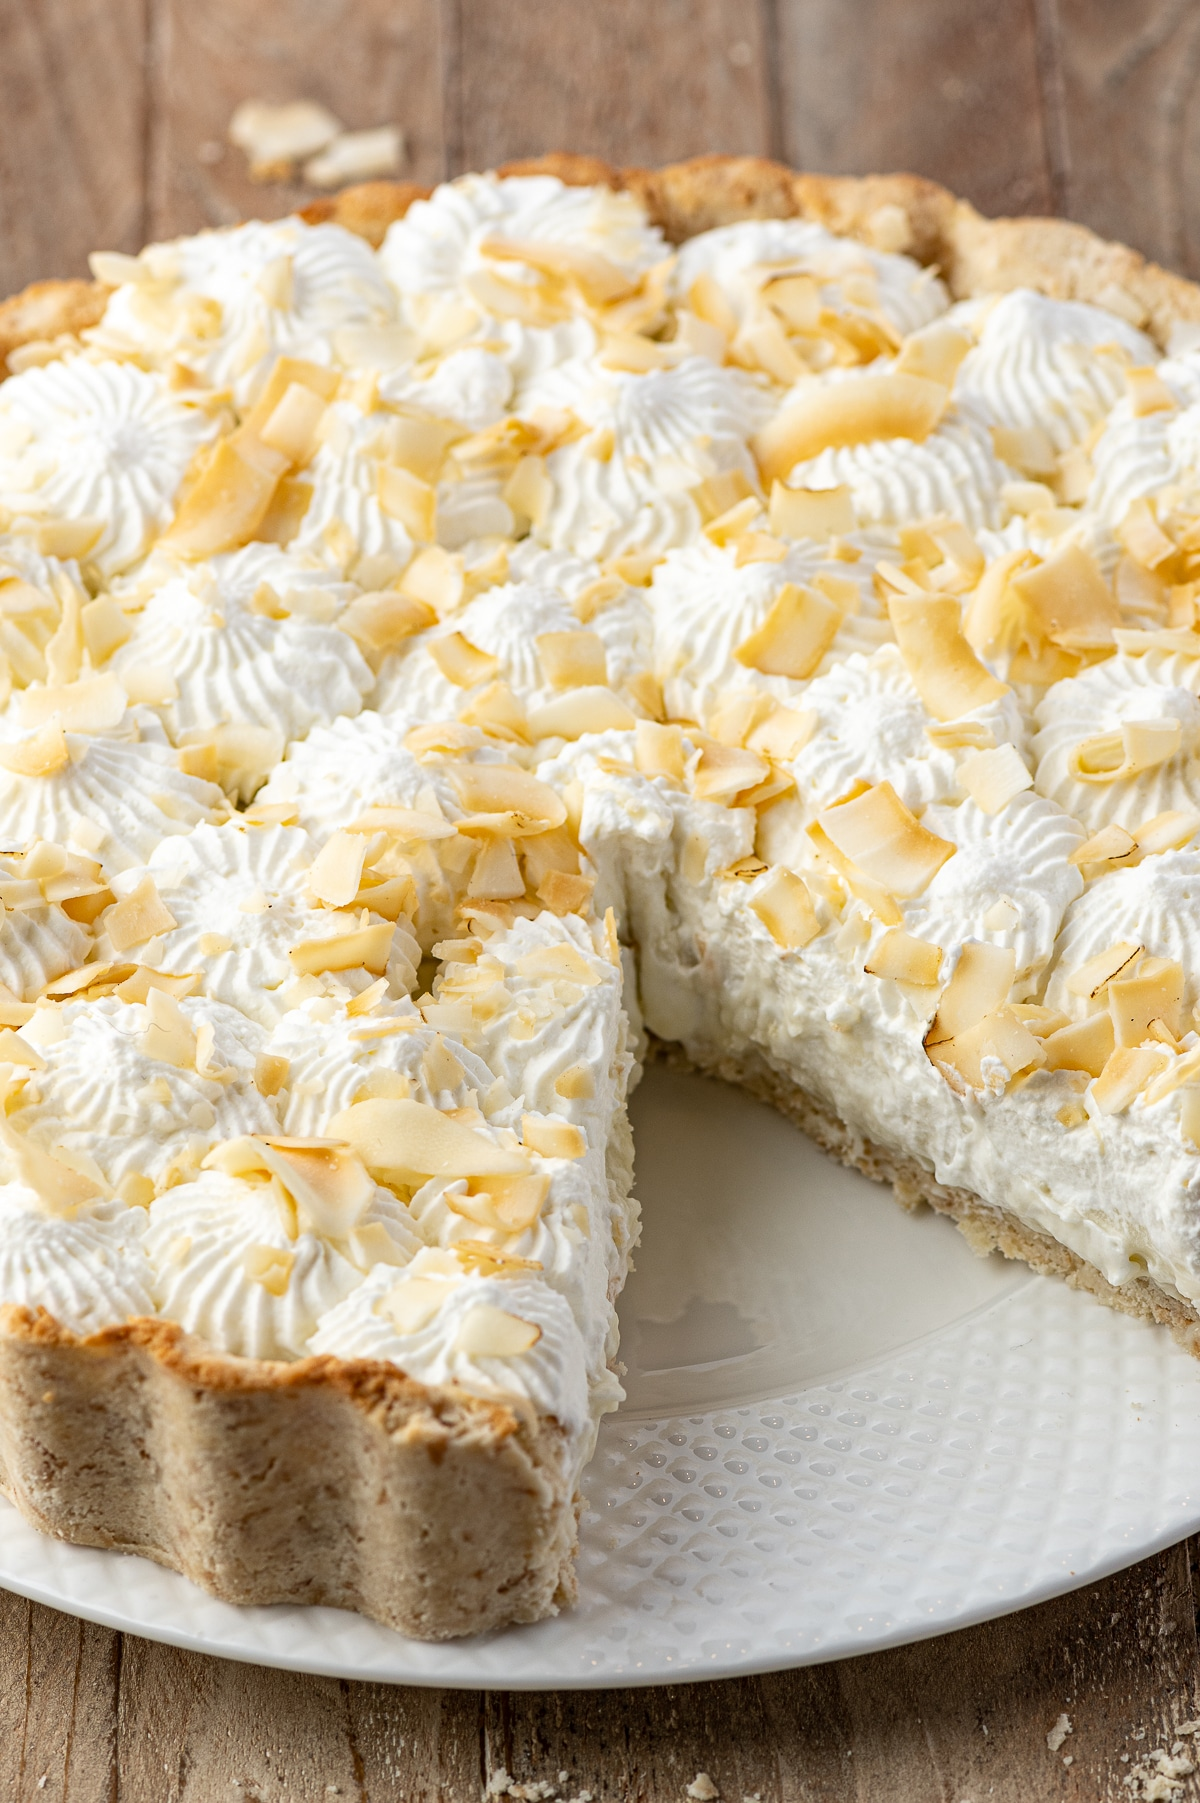 A close up shot of a coconut cream pie on a white texture plate with a slice removed.